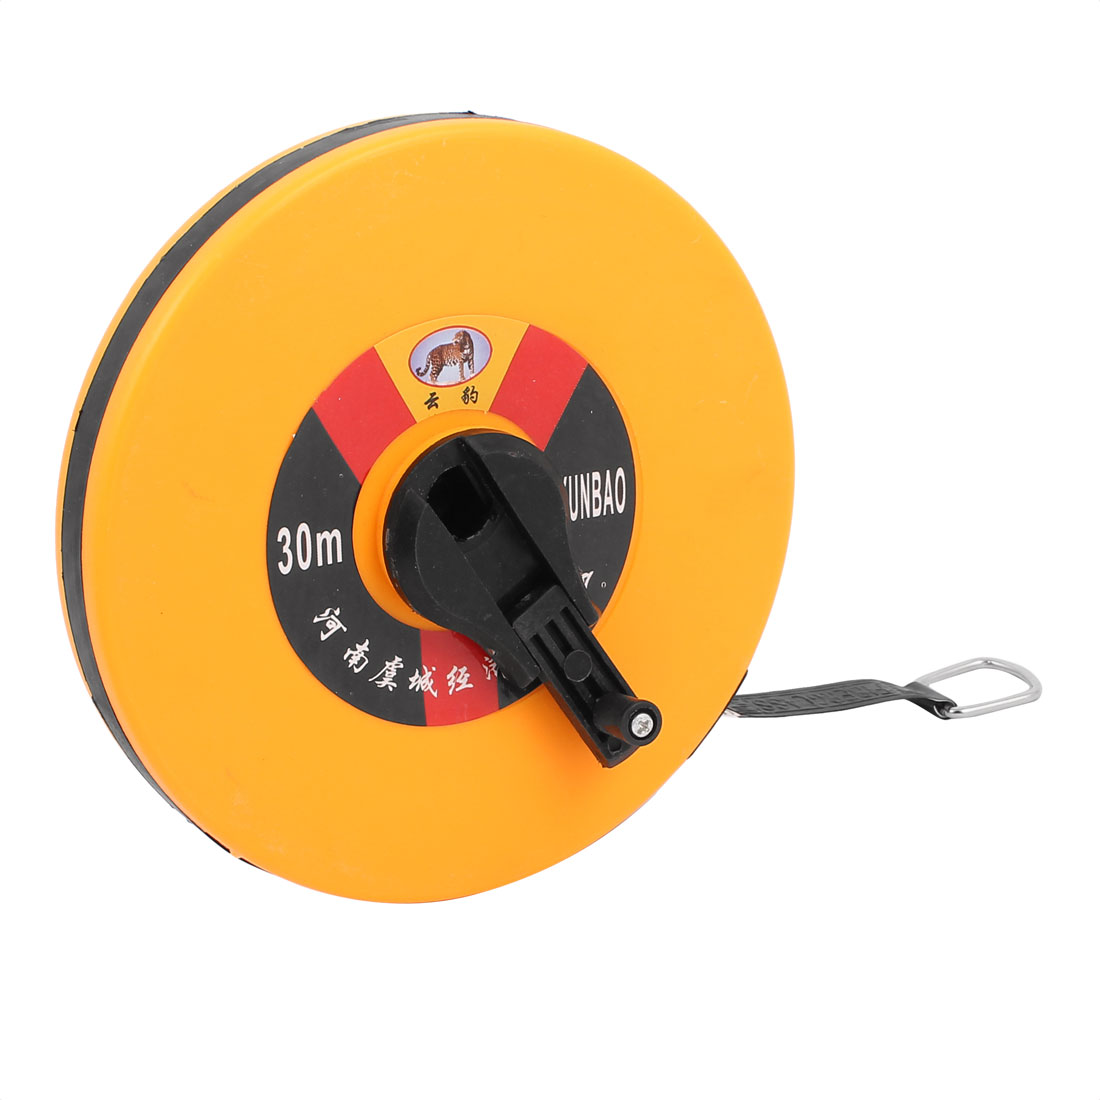 Plastic Case Round Retractable Measuring Tool Tape Measure Yellow 30m Long